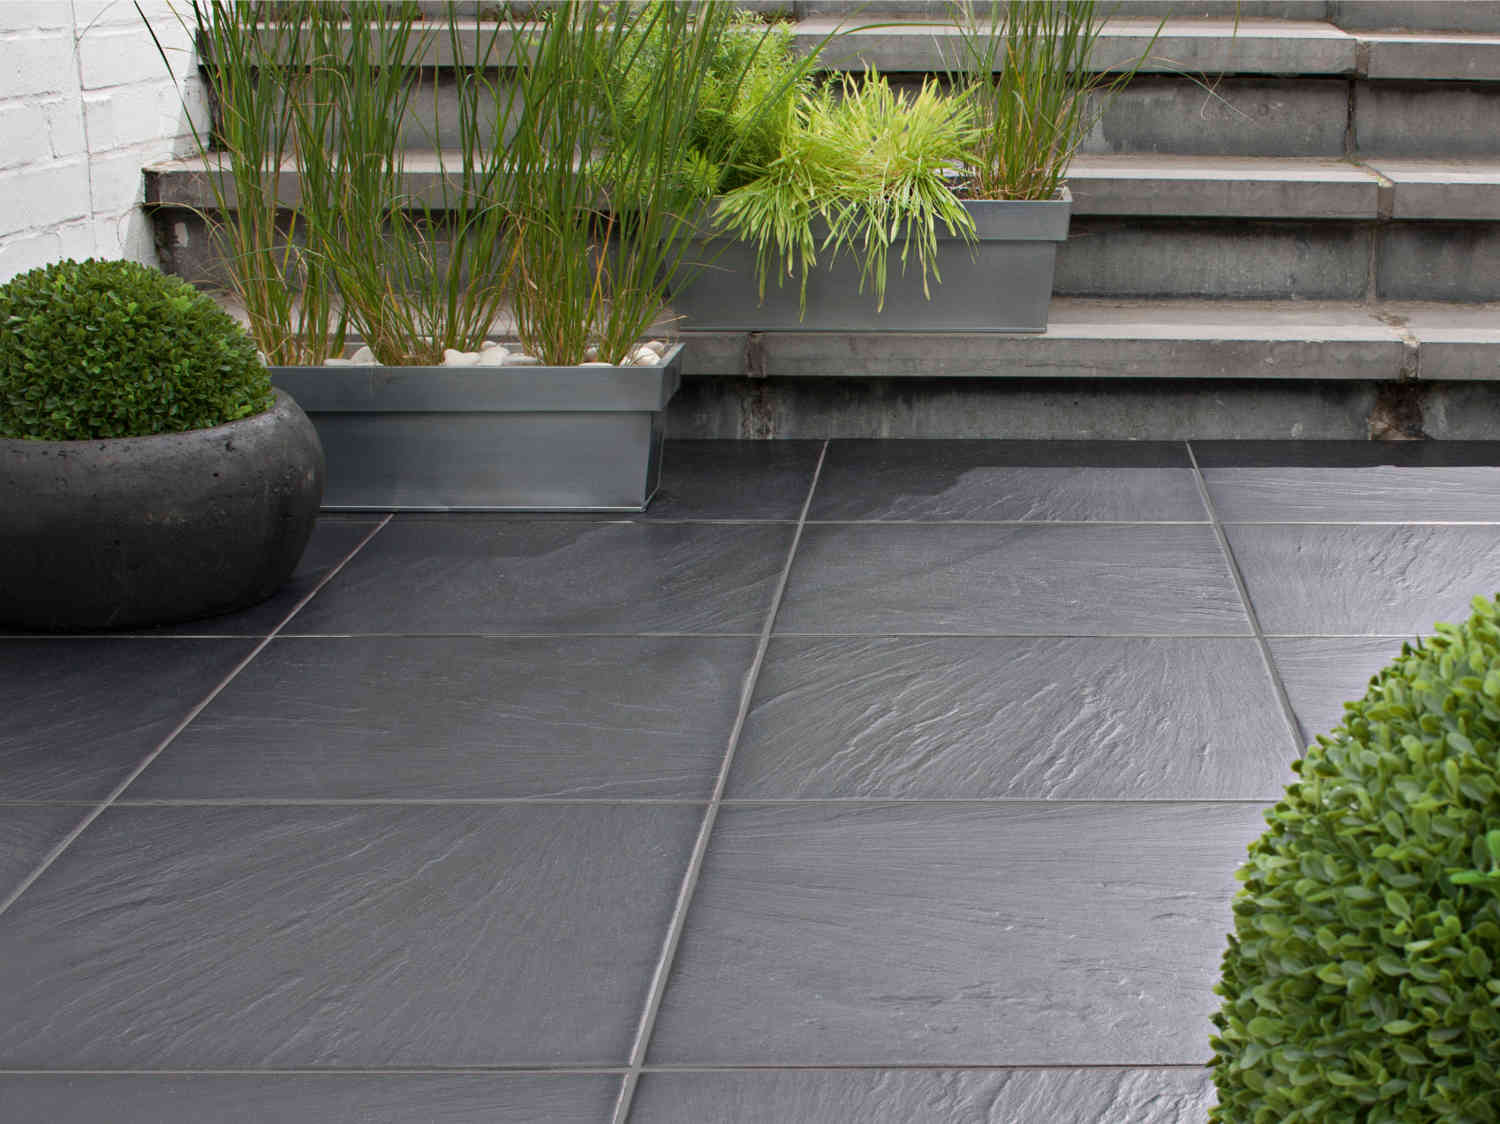 Carrelage jardin castorama for Carrelages exterieur castorama